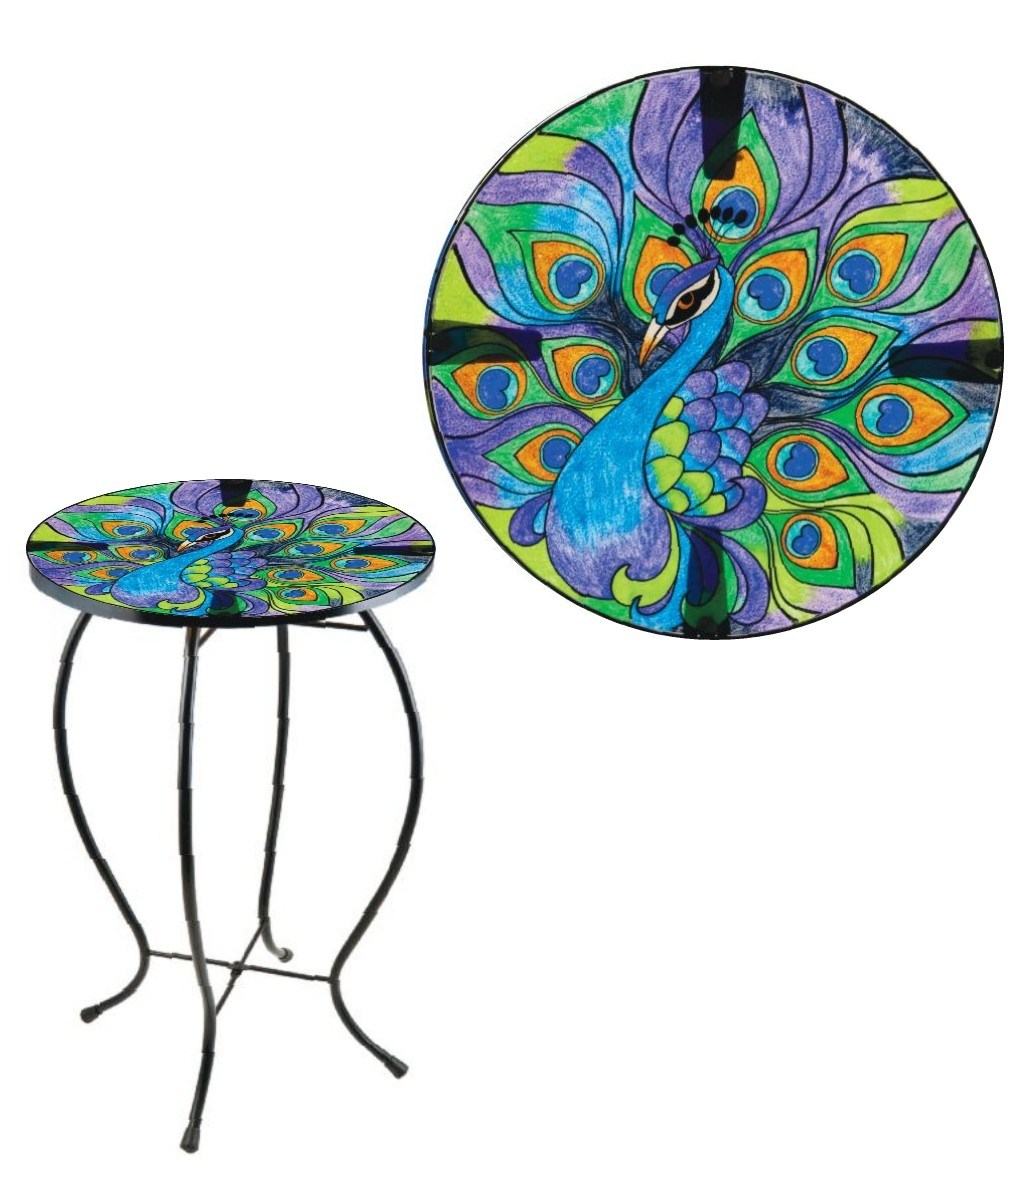 peacock glass patio accent table otdor round top jody ratke from public domain that can find other search engine and posted under unusual bedside tables oak nest small thin side